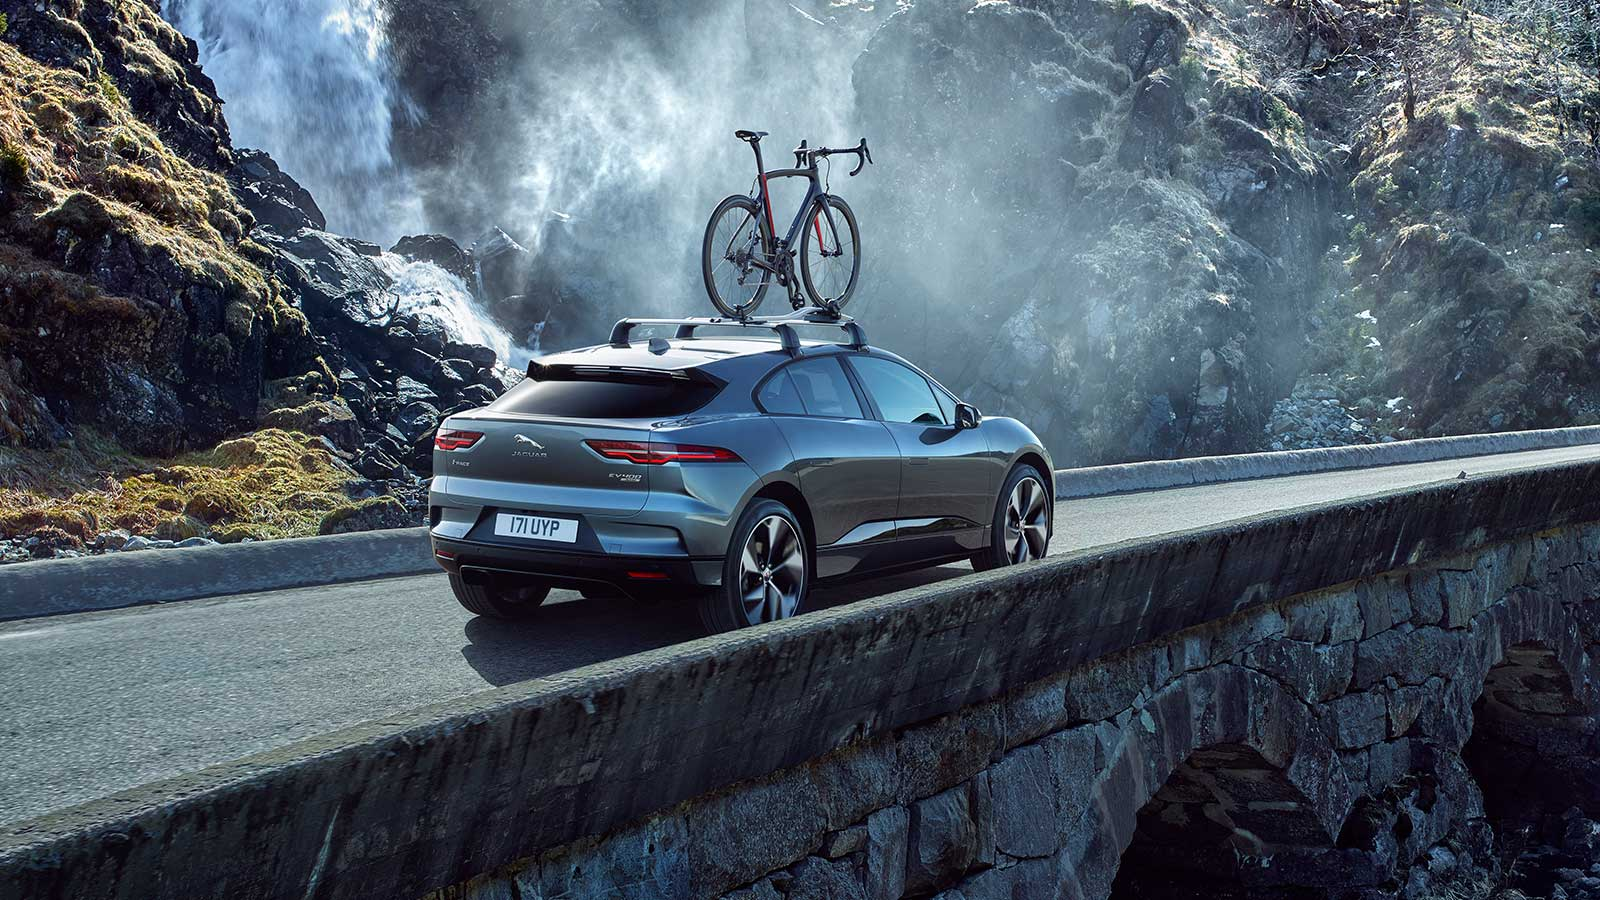 Jaguar I-PACE Carrying a bicycle on its roof